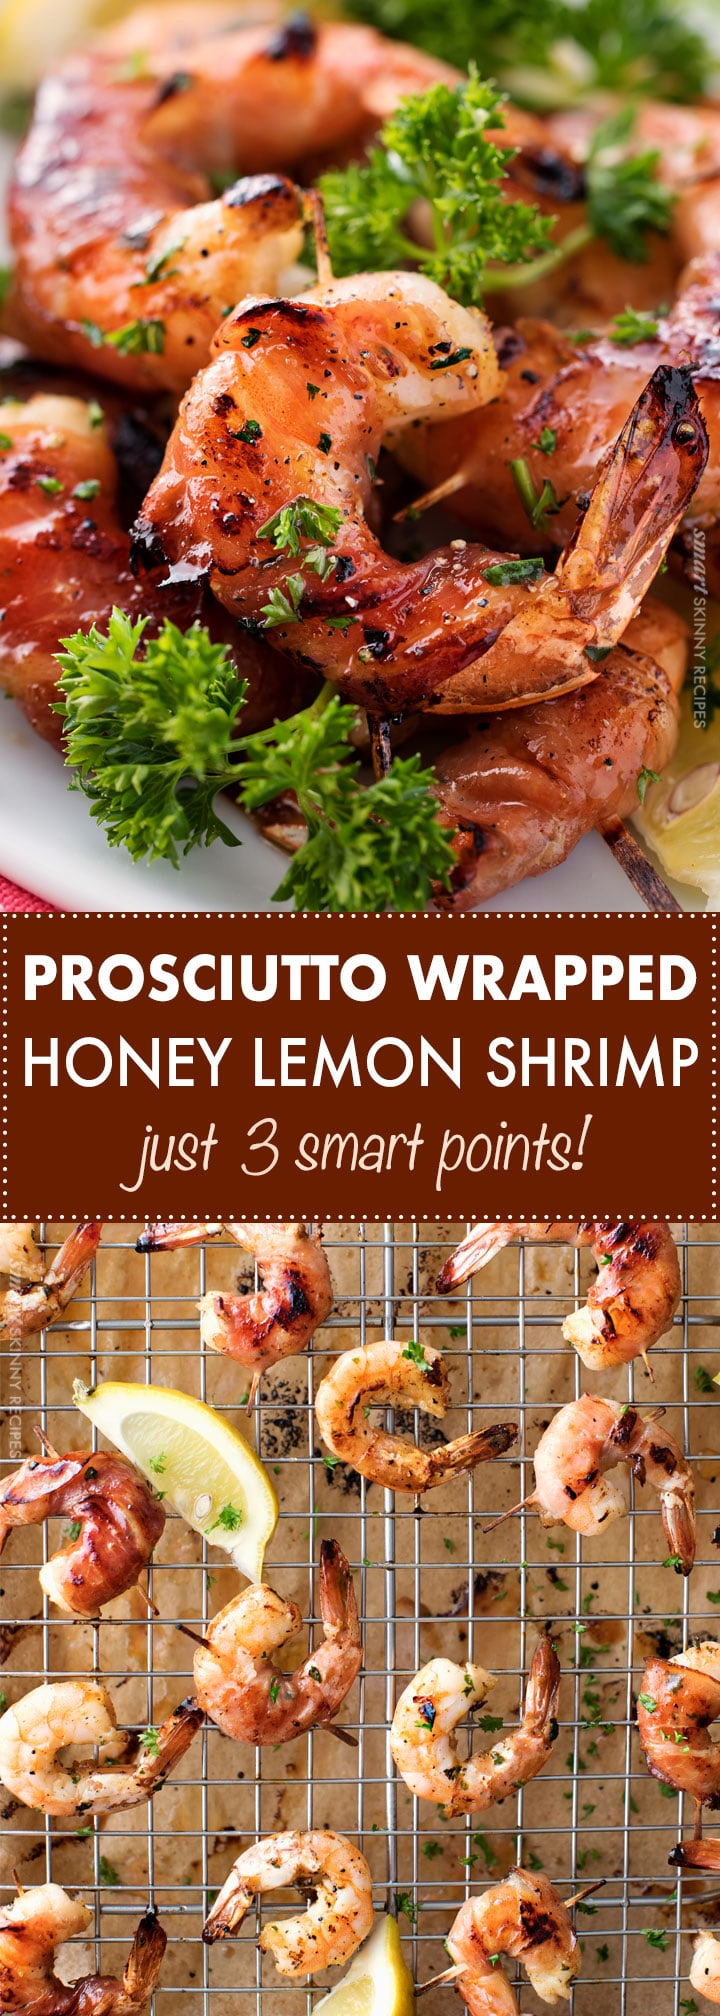 Deliciously sweet, tangy and salty, this prosciutto wrapped honey lemon shrimp is the tastiest, and easiest meal ever!  Just 3 smart points per serving too! | #shrimp #weightwatchers #freestyle #prosciutto #honey #lemon #lightmeal